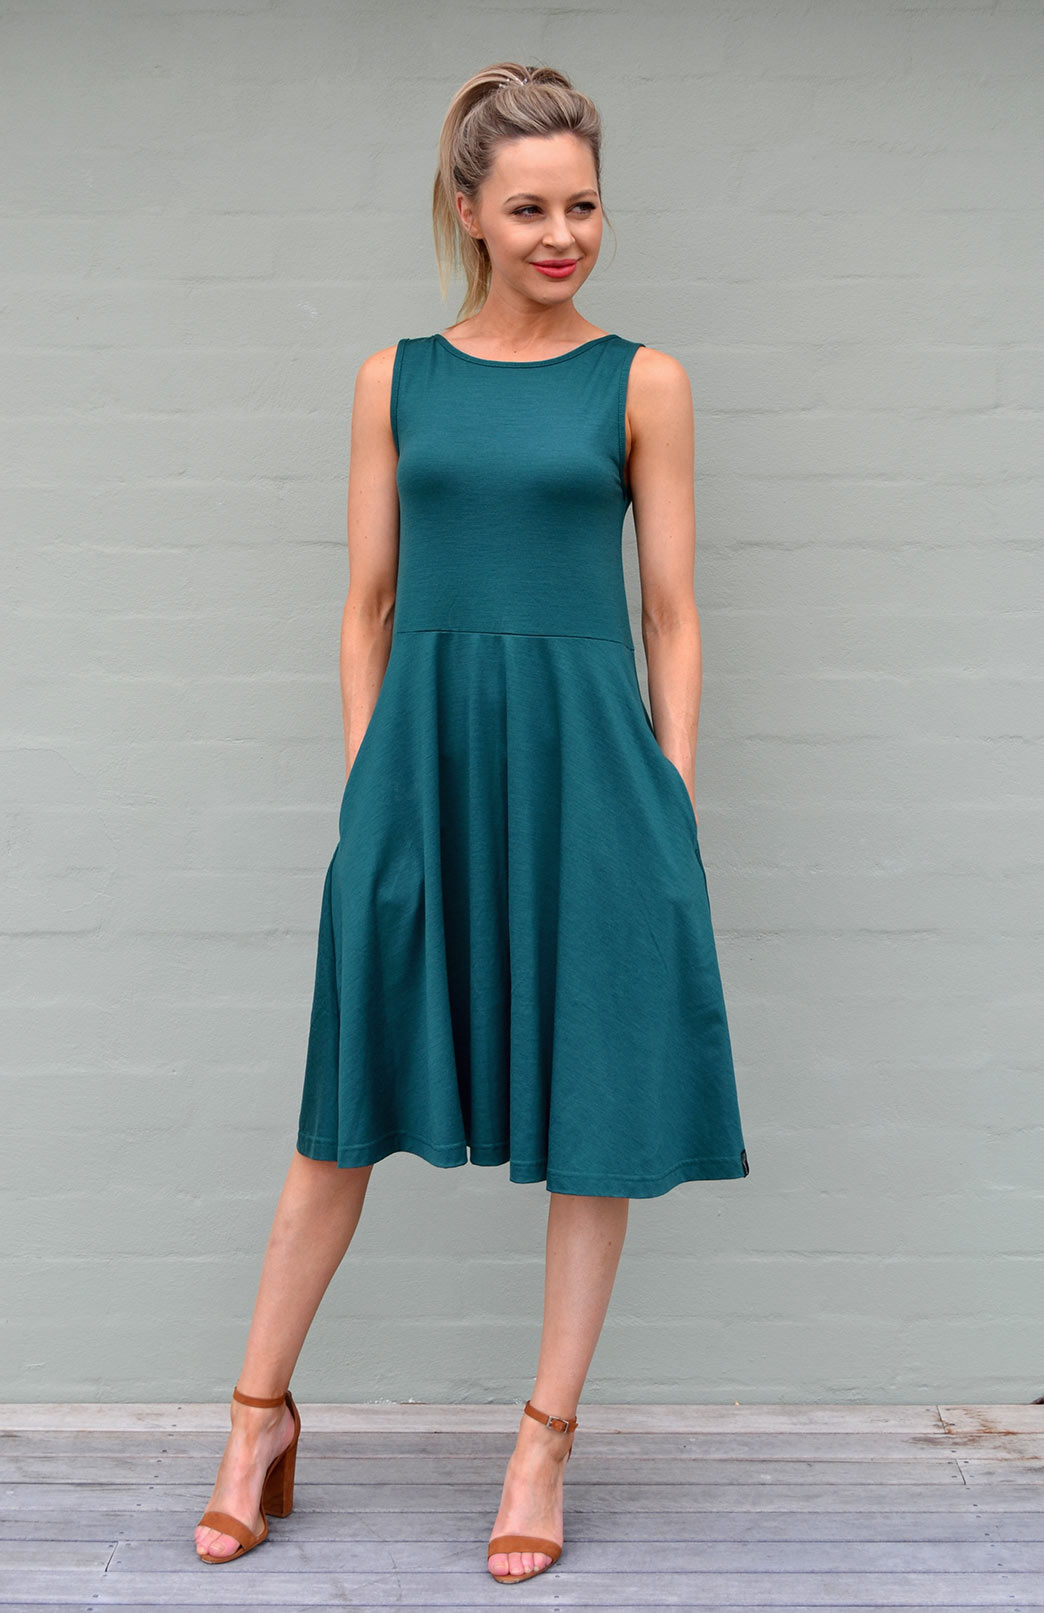 MaryAnn Fit and Flare Dress - Women's Emerald Green Merino Wool Sleeveless Dress with Pockets - Smitten Merino Tasmania Australia